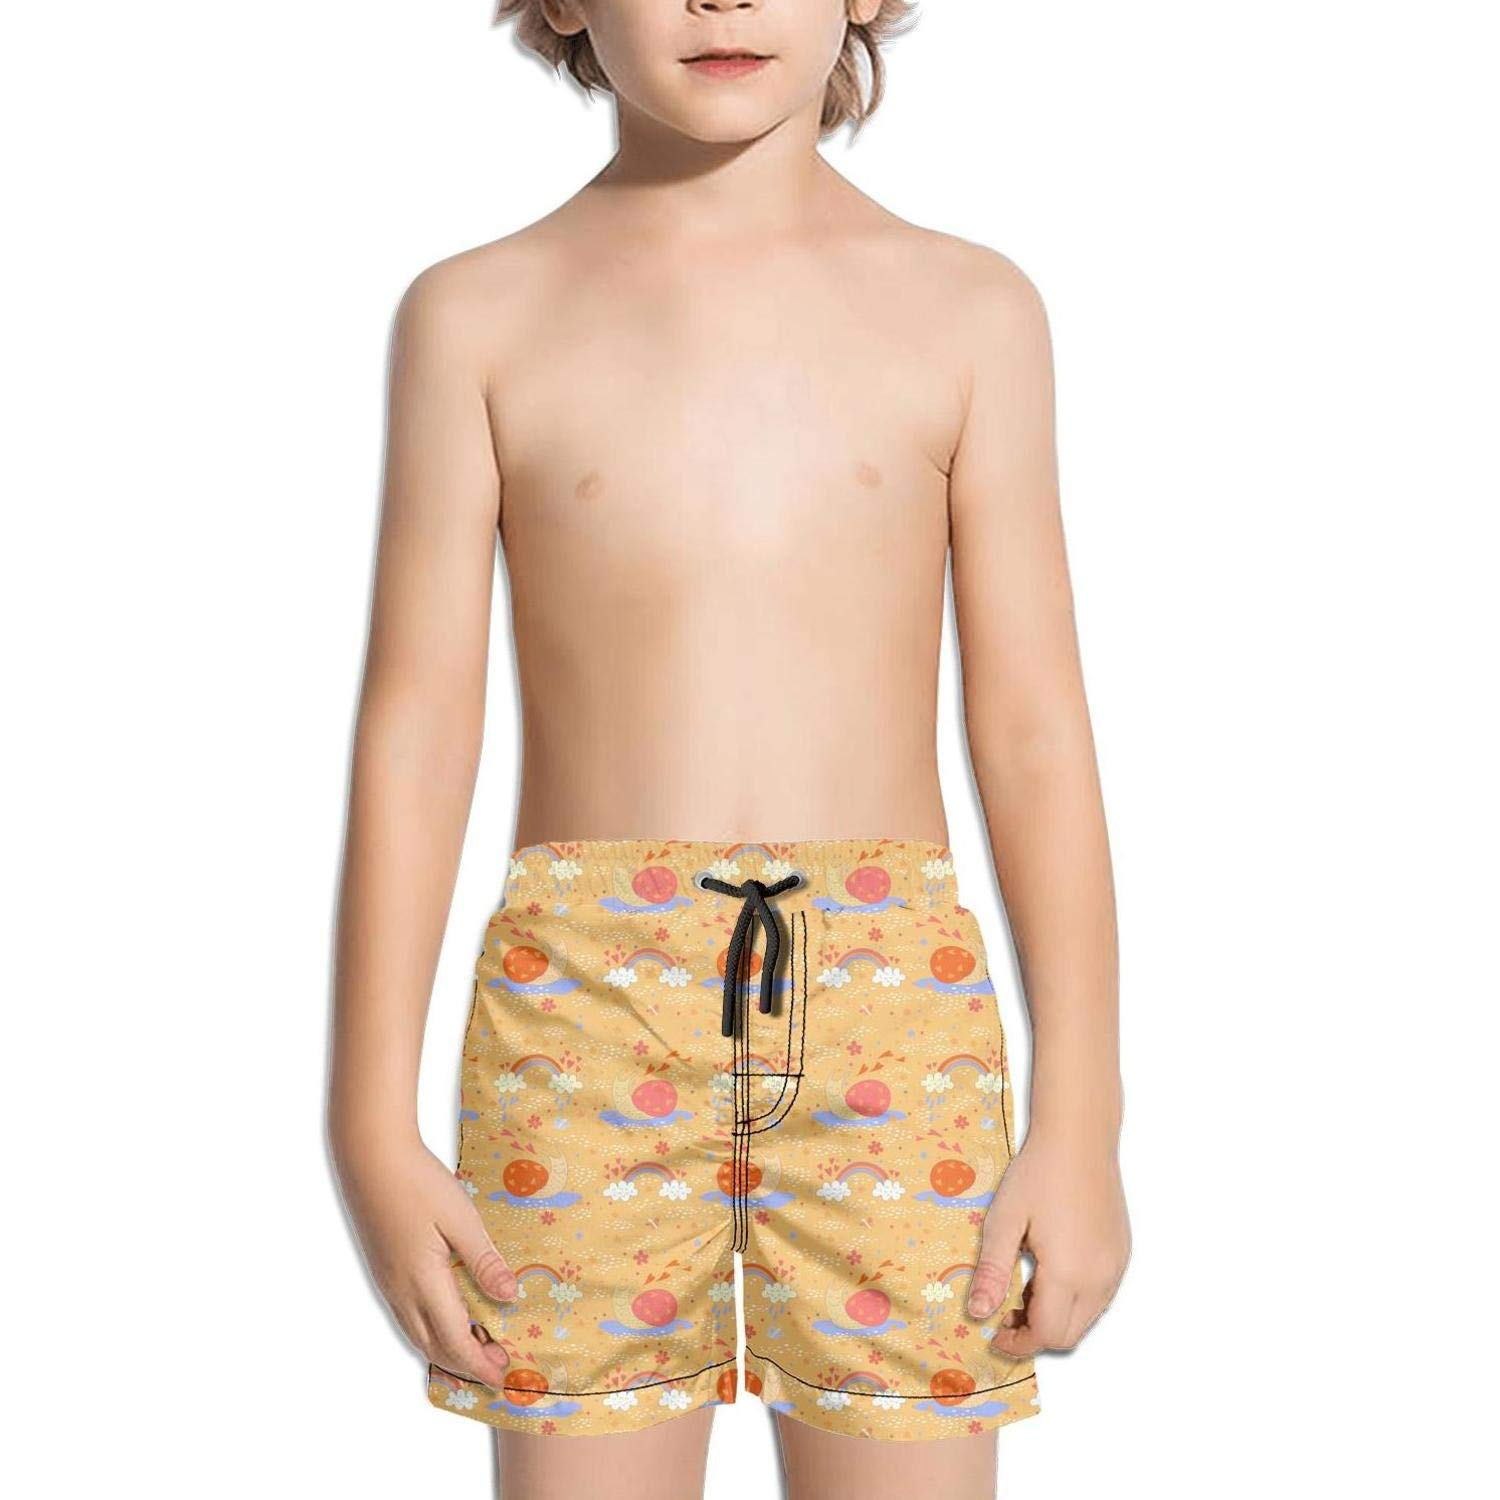 Ina Fers.Quick Dry Swim Trunks Cute Red Snails Butterfly Love Rainbow Shorts Boys